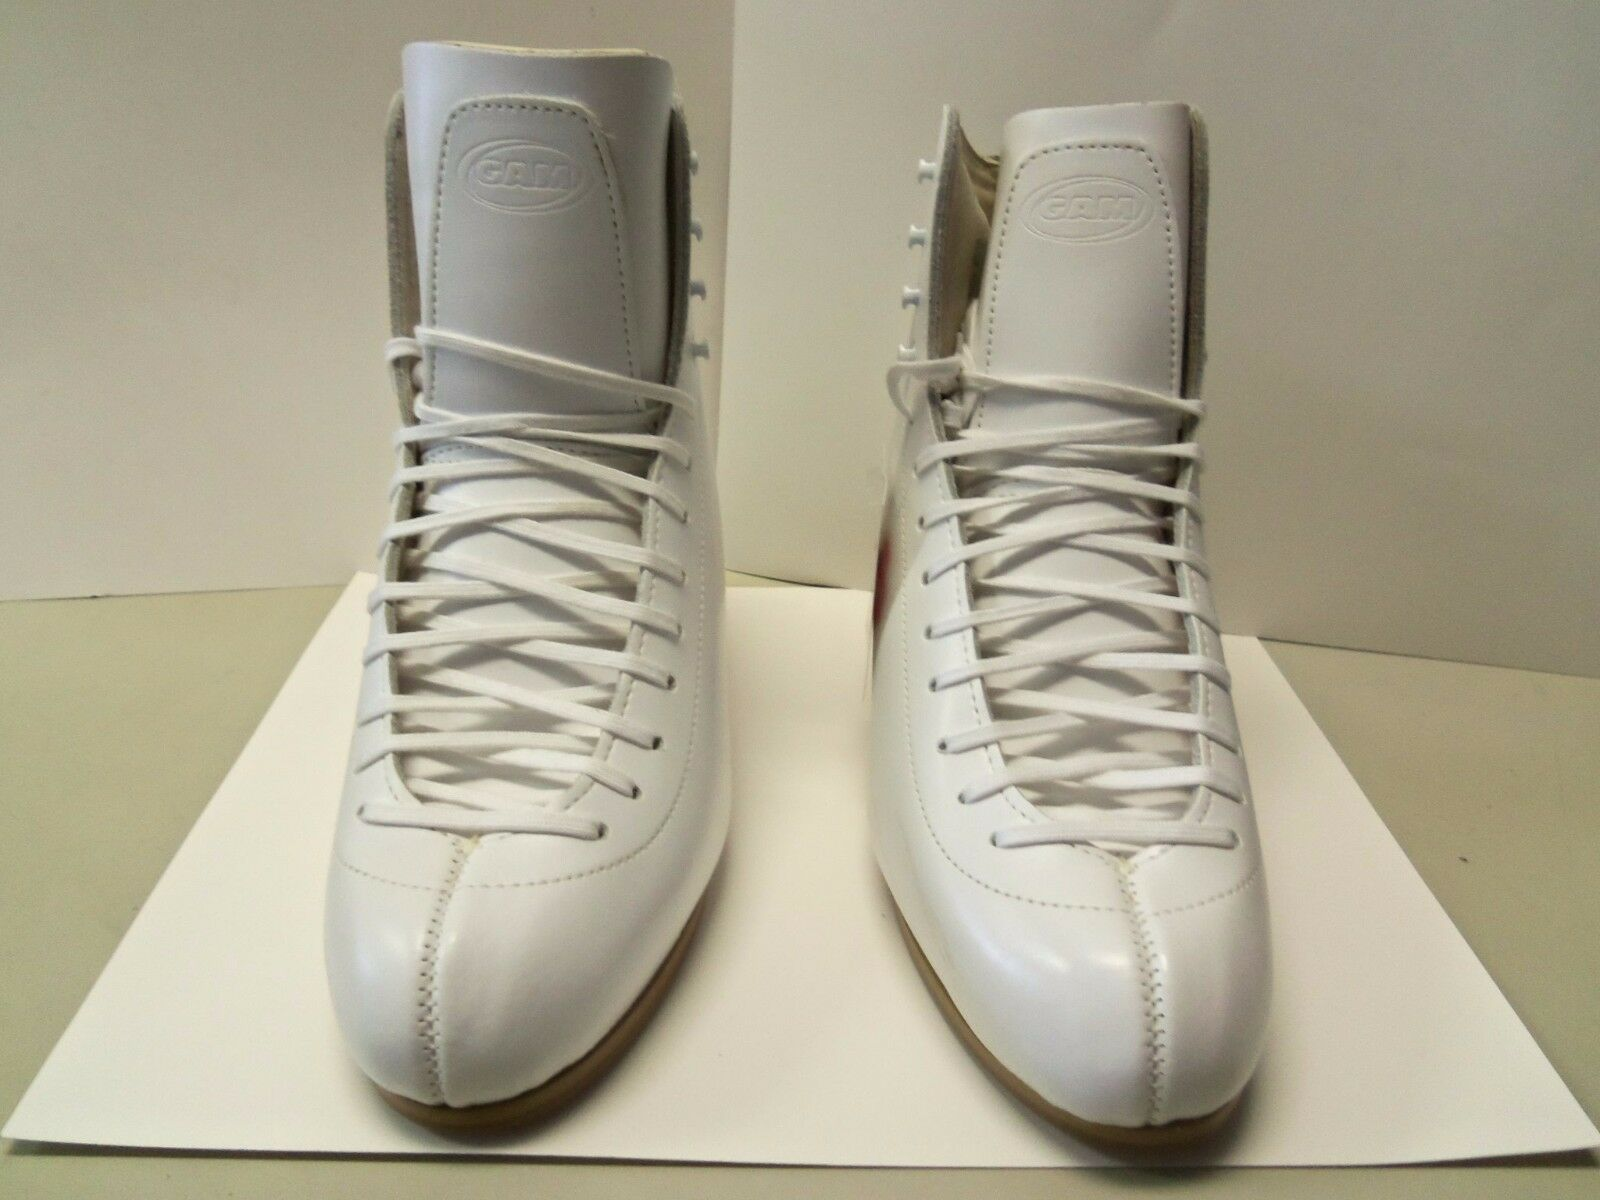 Gam Spectra 070 White  Women's Figure Skating Boot 9C  low prices